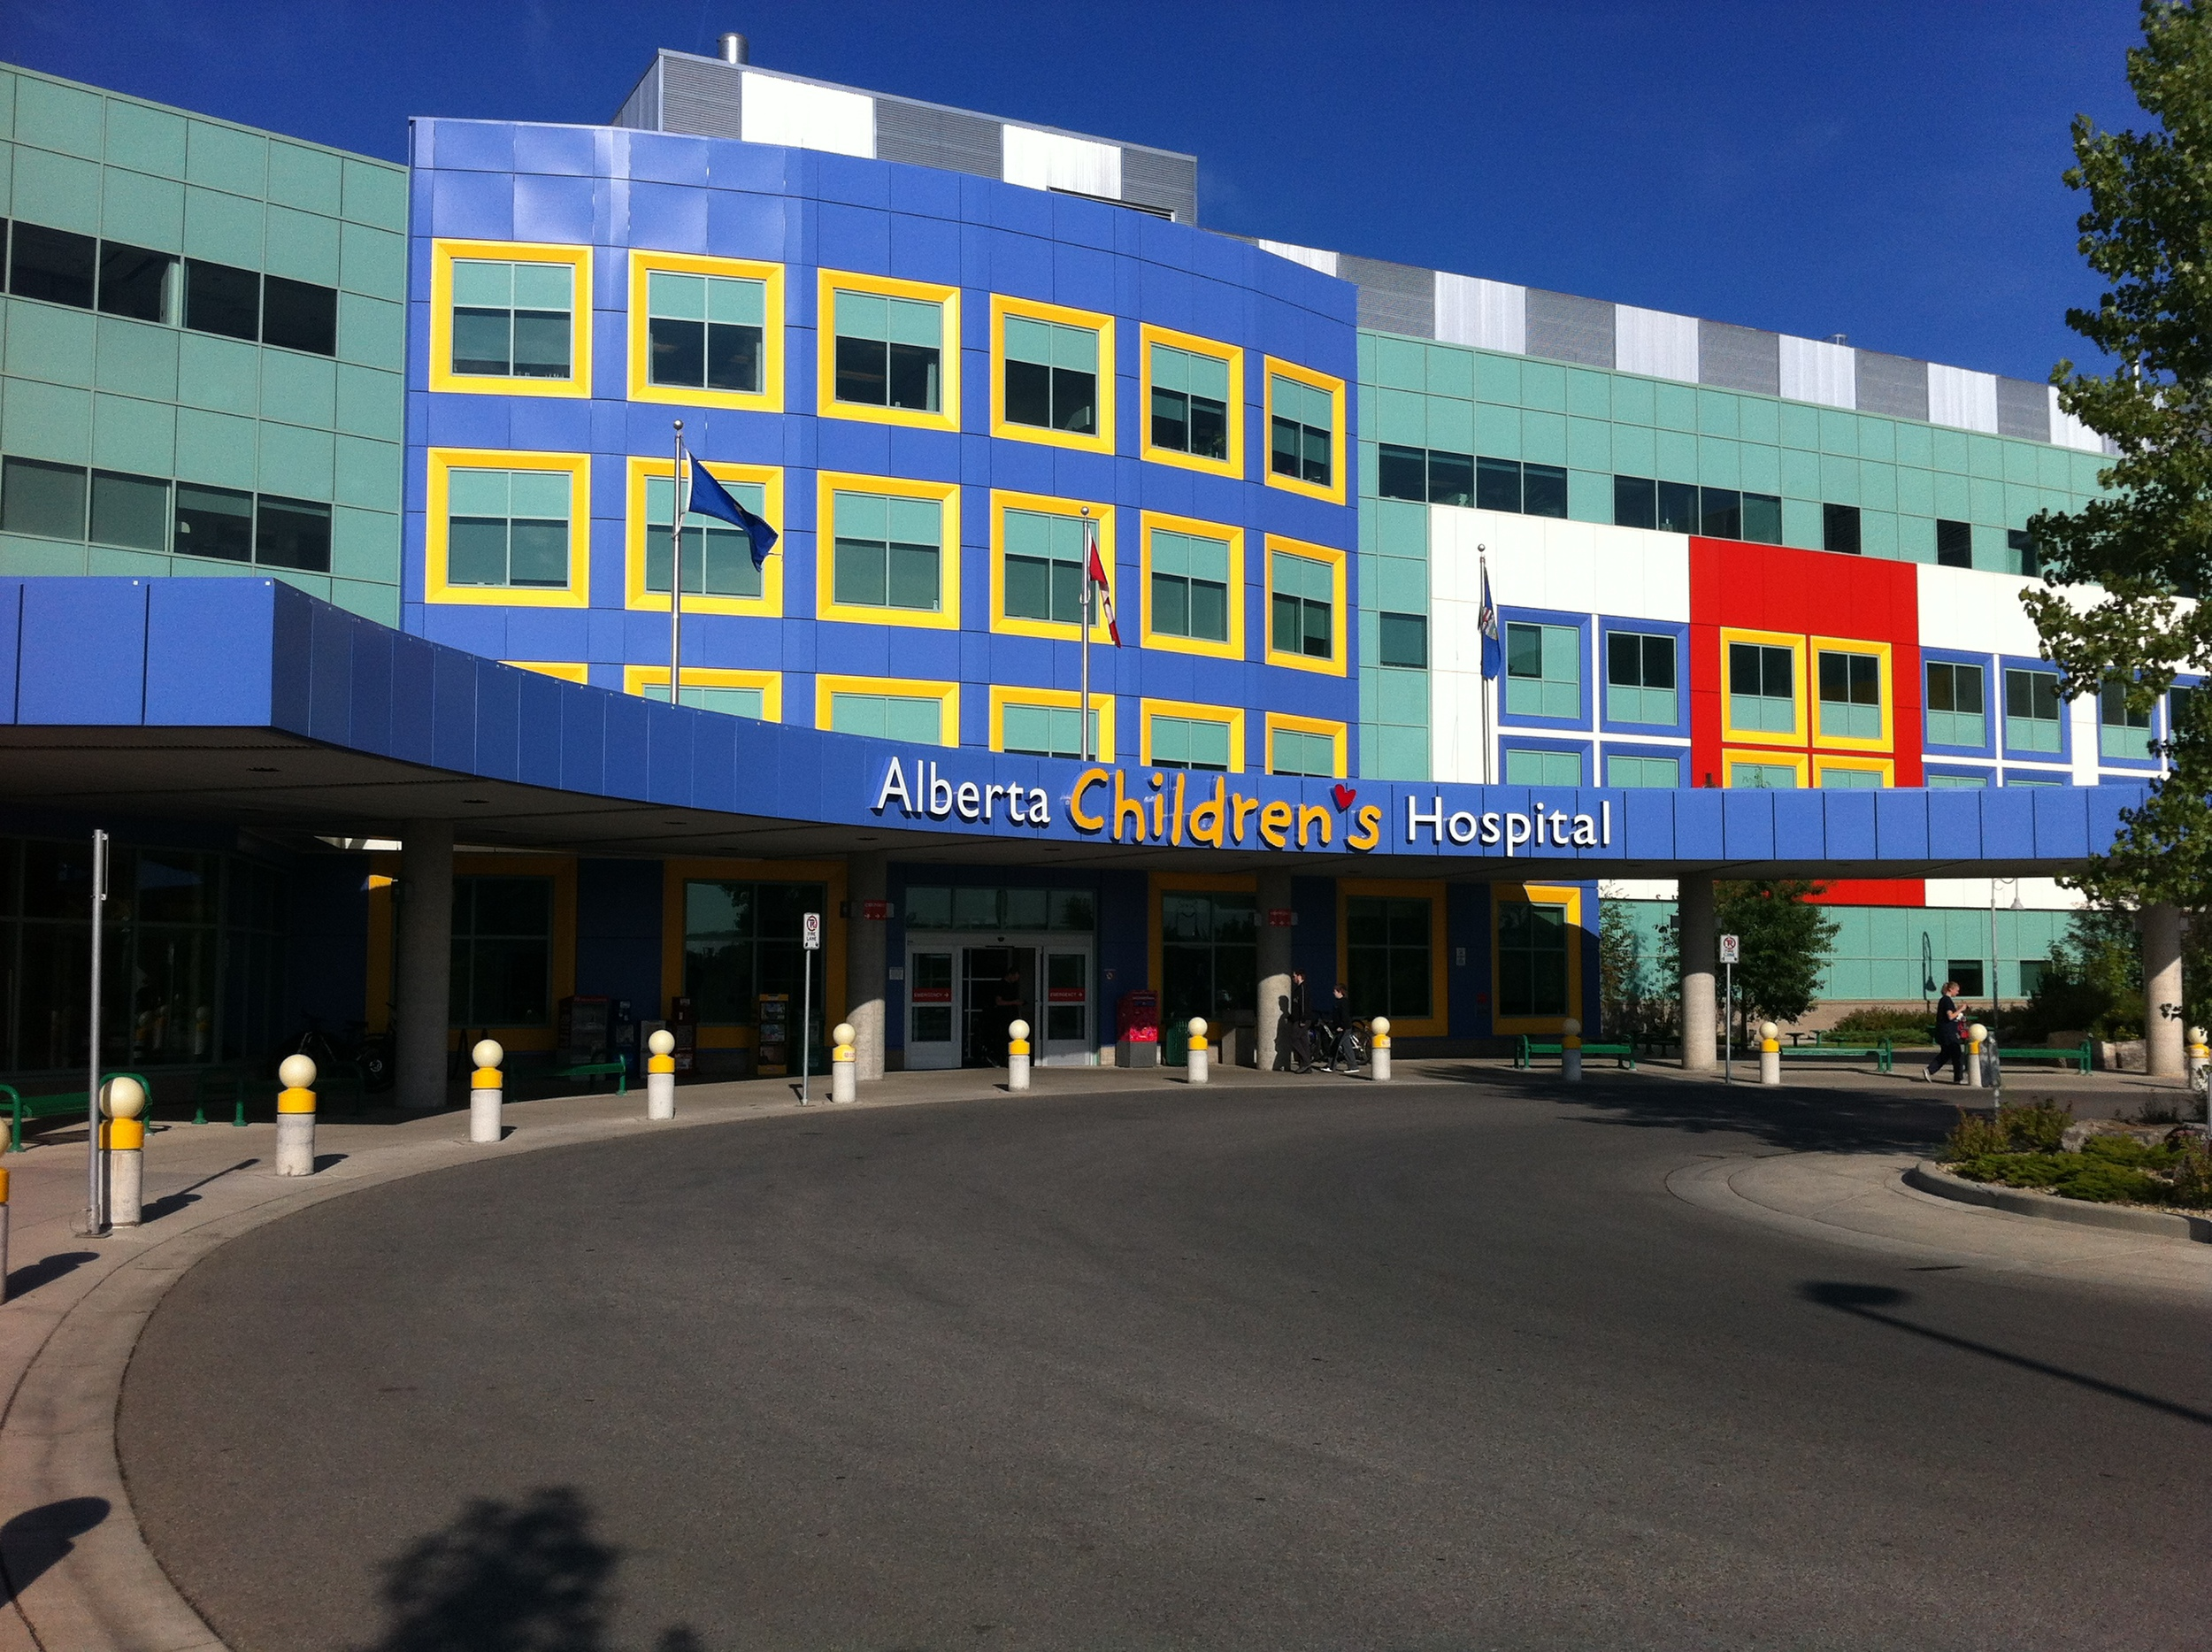 It is not coincidence that the Alberta Children's Hospital looks like it was constructed with lego.  A youth advisory group provide the design team with ideas about what the hospital should look like - big windows and bright colours were two of the suggestions.  The building is both fun and welcoming, something every building should be.